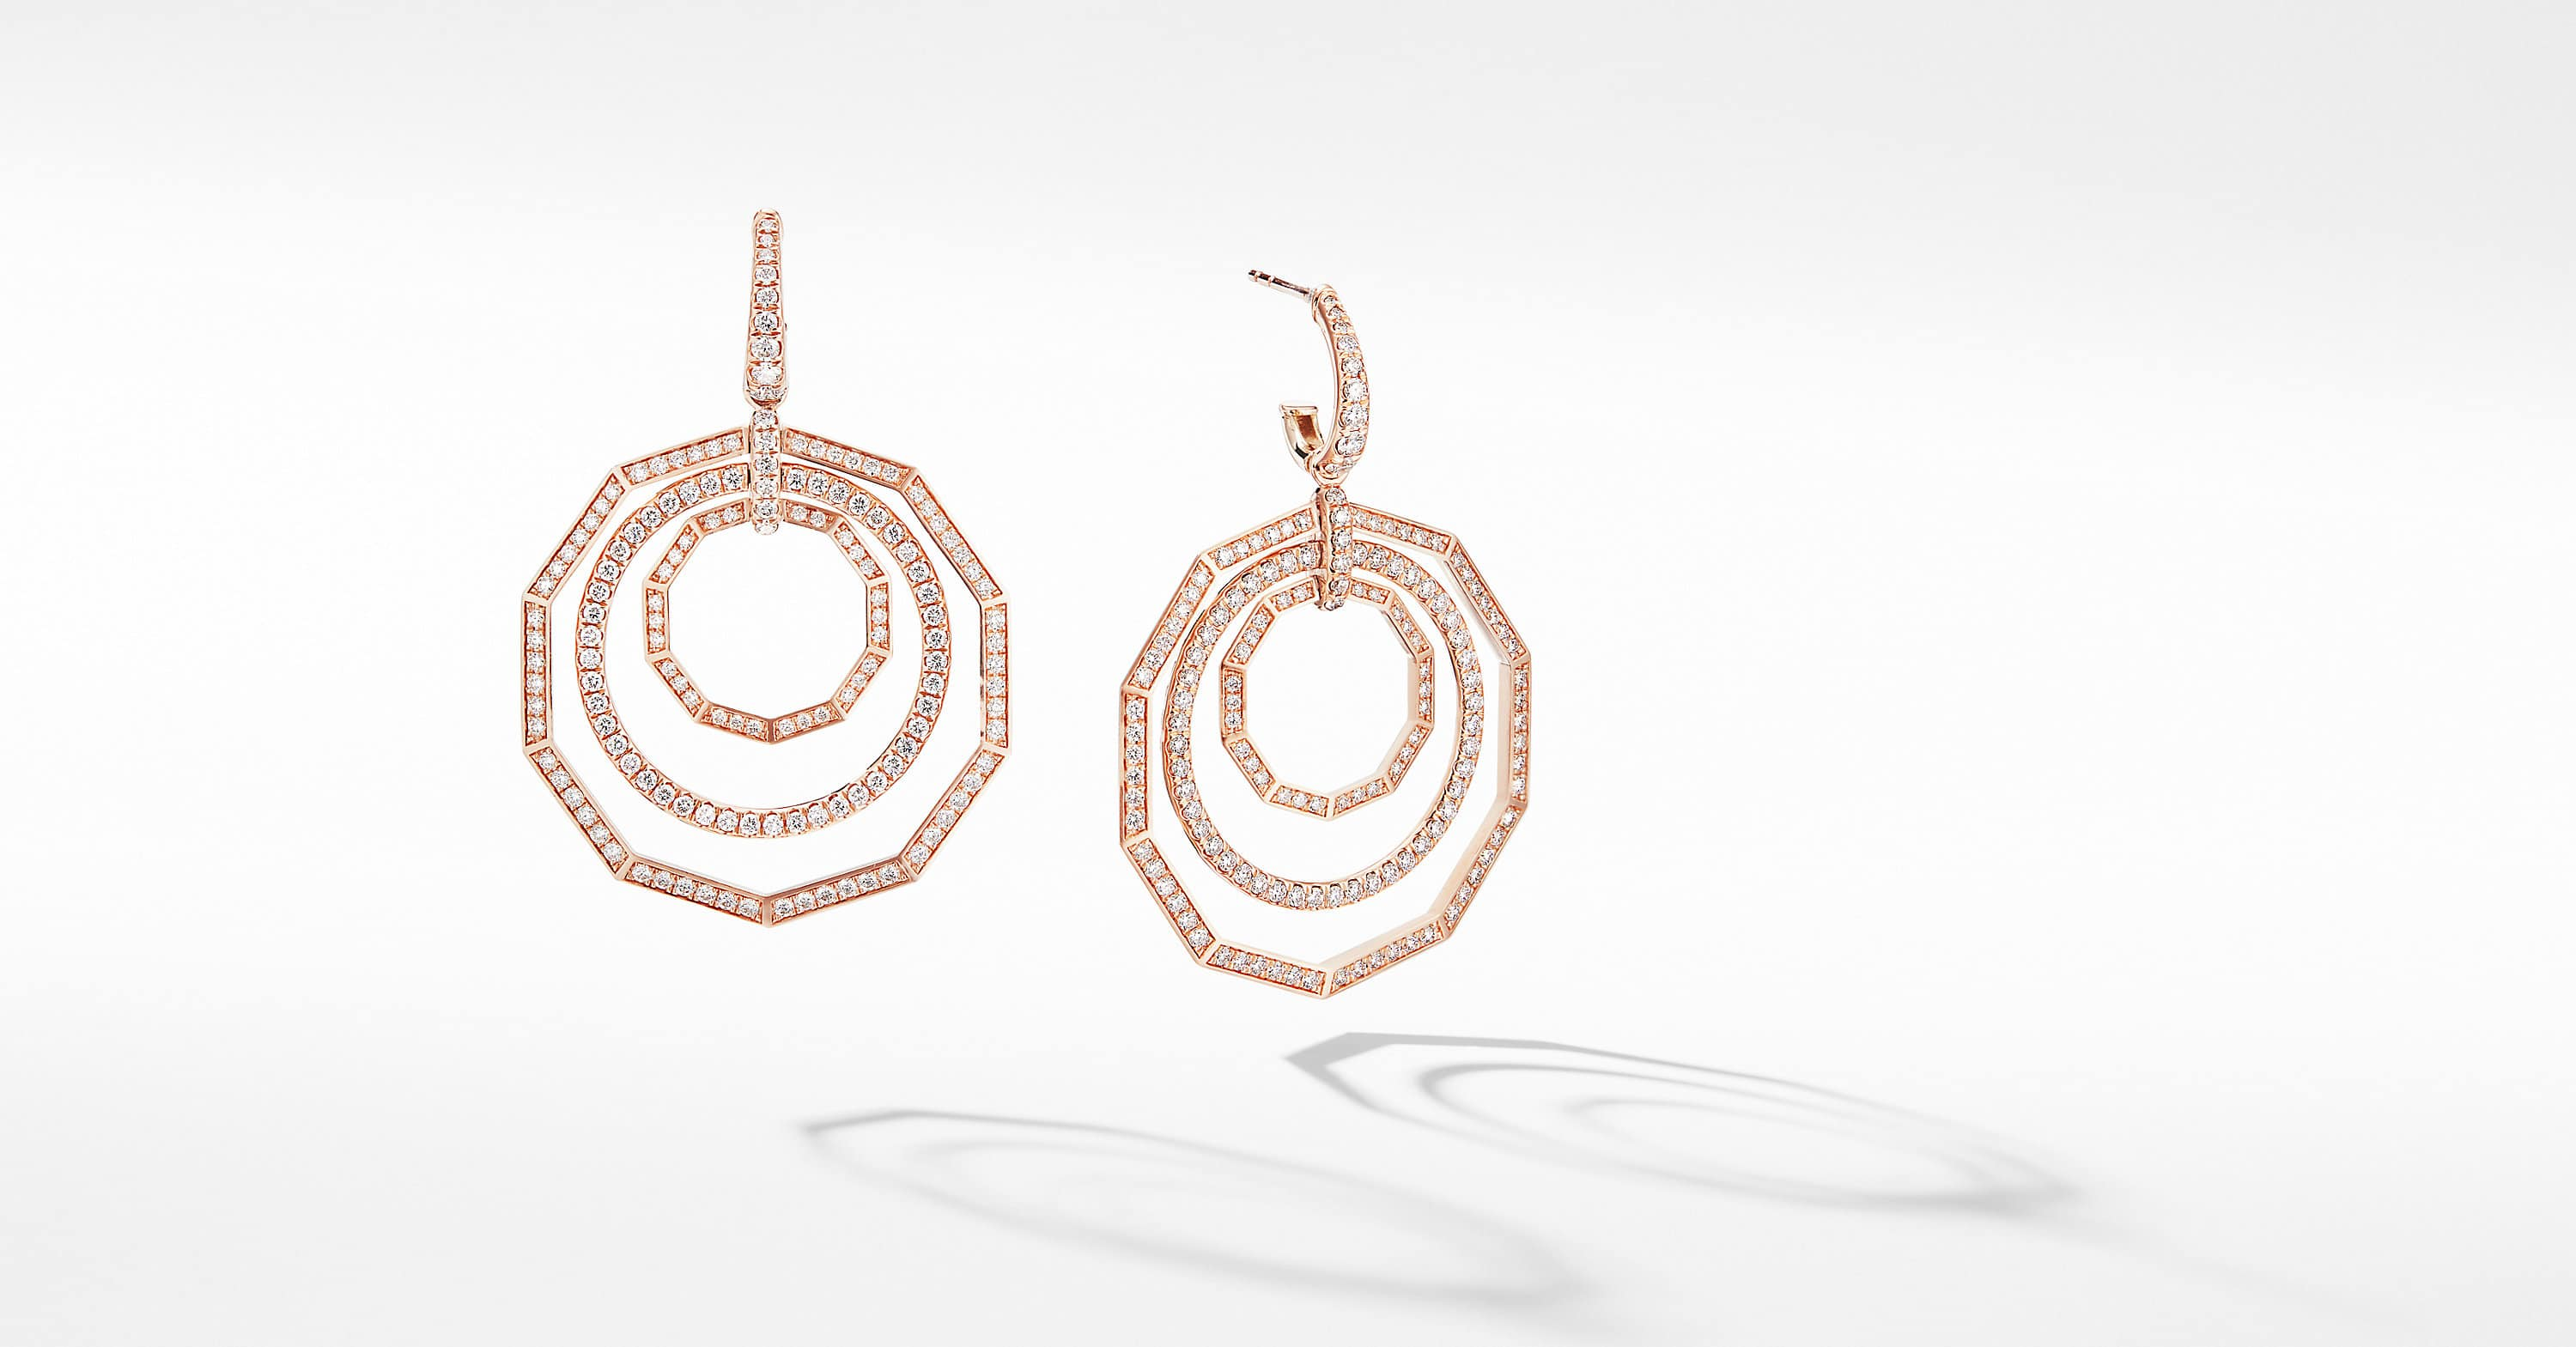 Stax Drop Earrings in 18K Rose Gold with Full Pavé